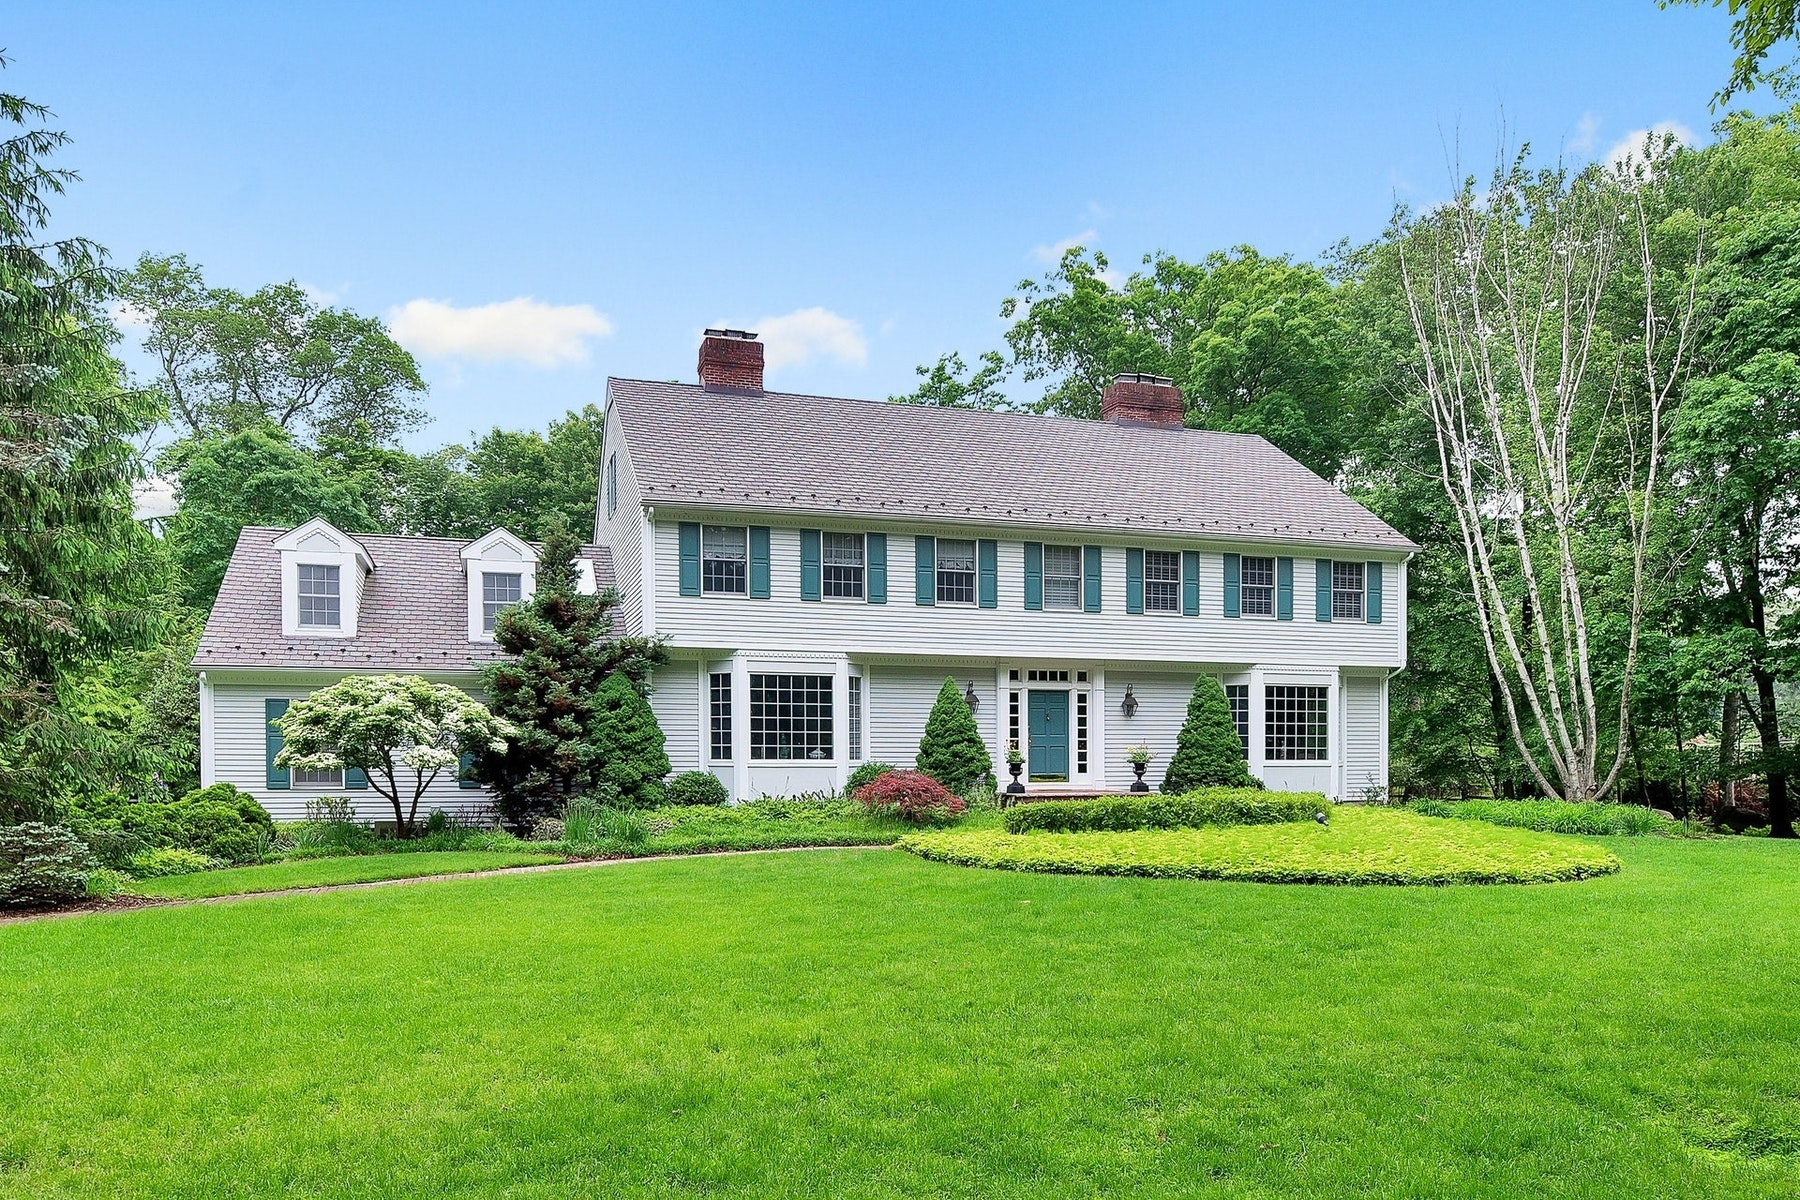 Single Family Homes for Active at Beautiful CH Colonial 21 Cameron Rd. Saddle River, New Jersey 07458 United States